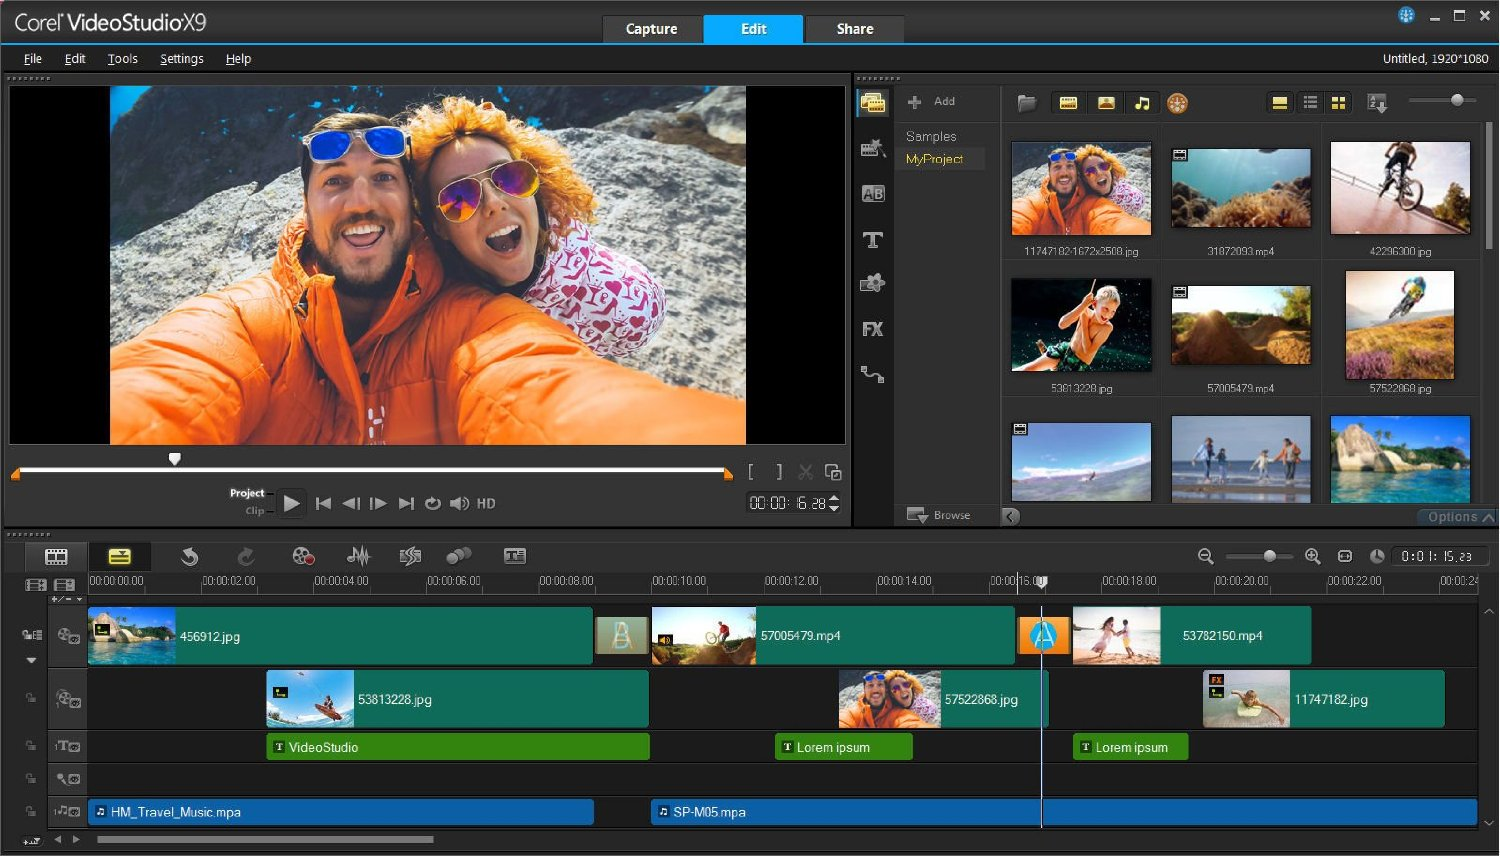 Download corel video studio x9 pro ultimate x86 x64 for Corel video studio templates download